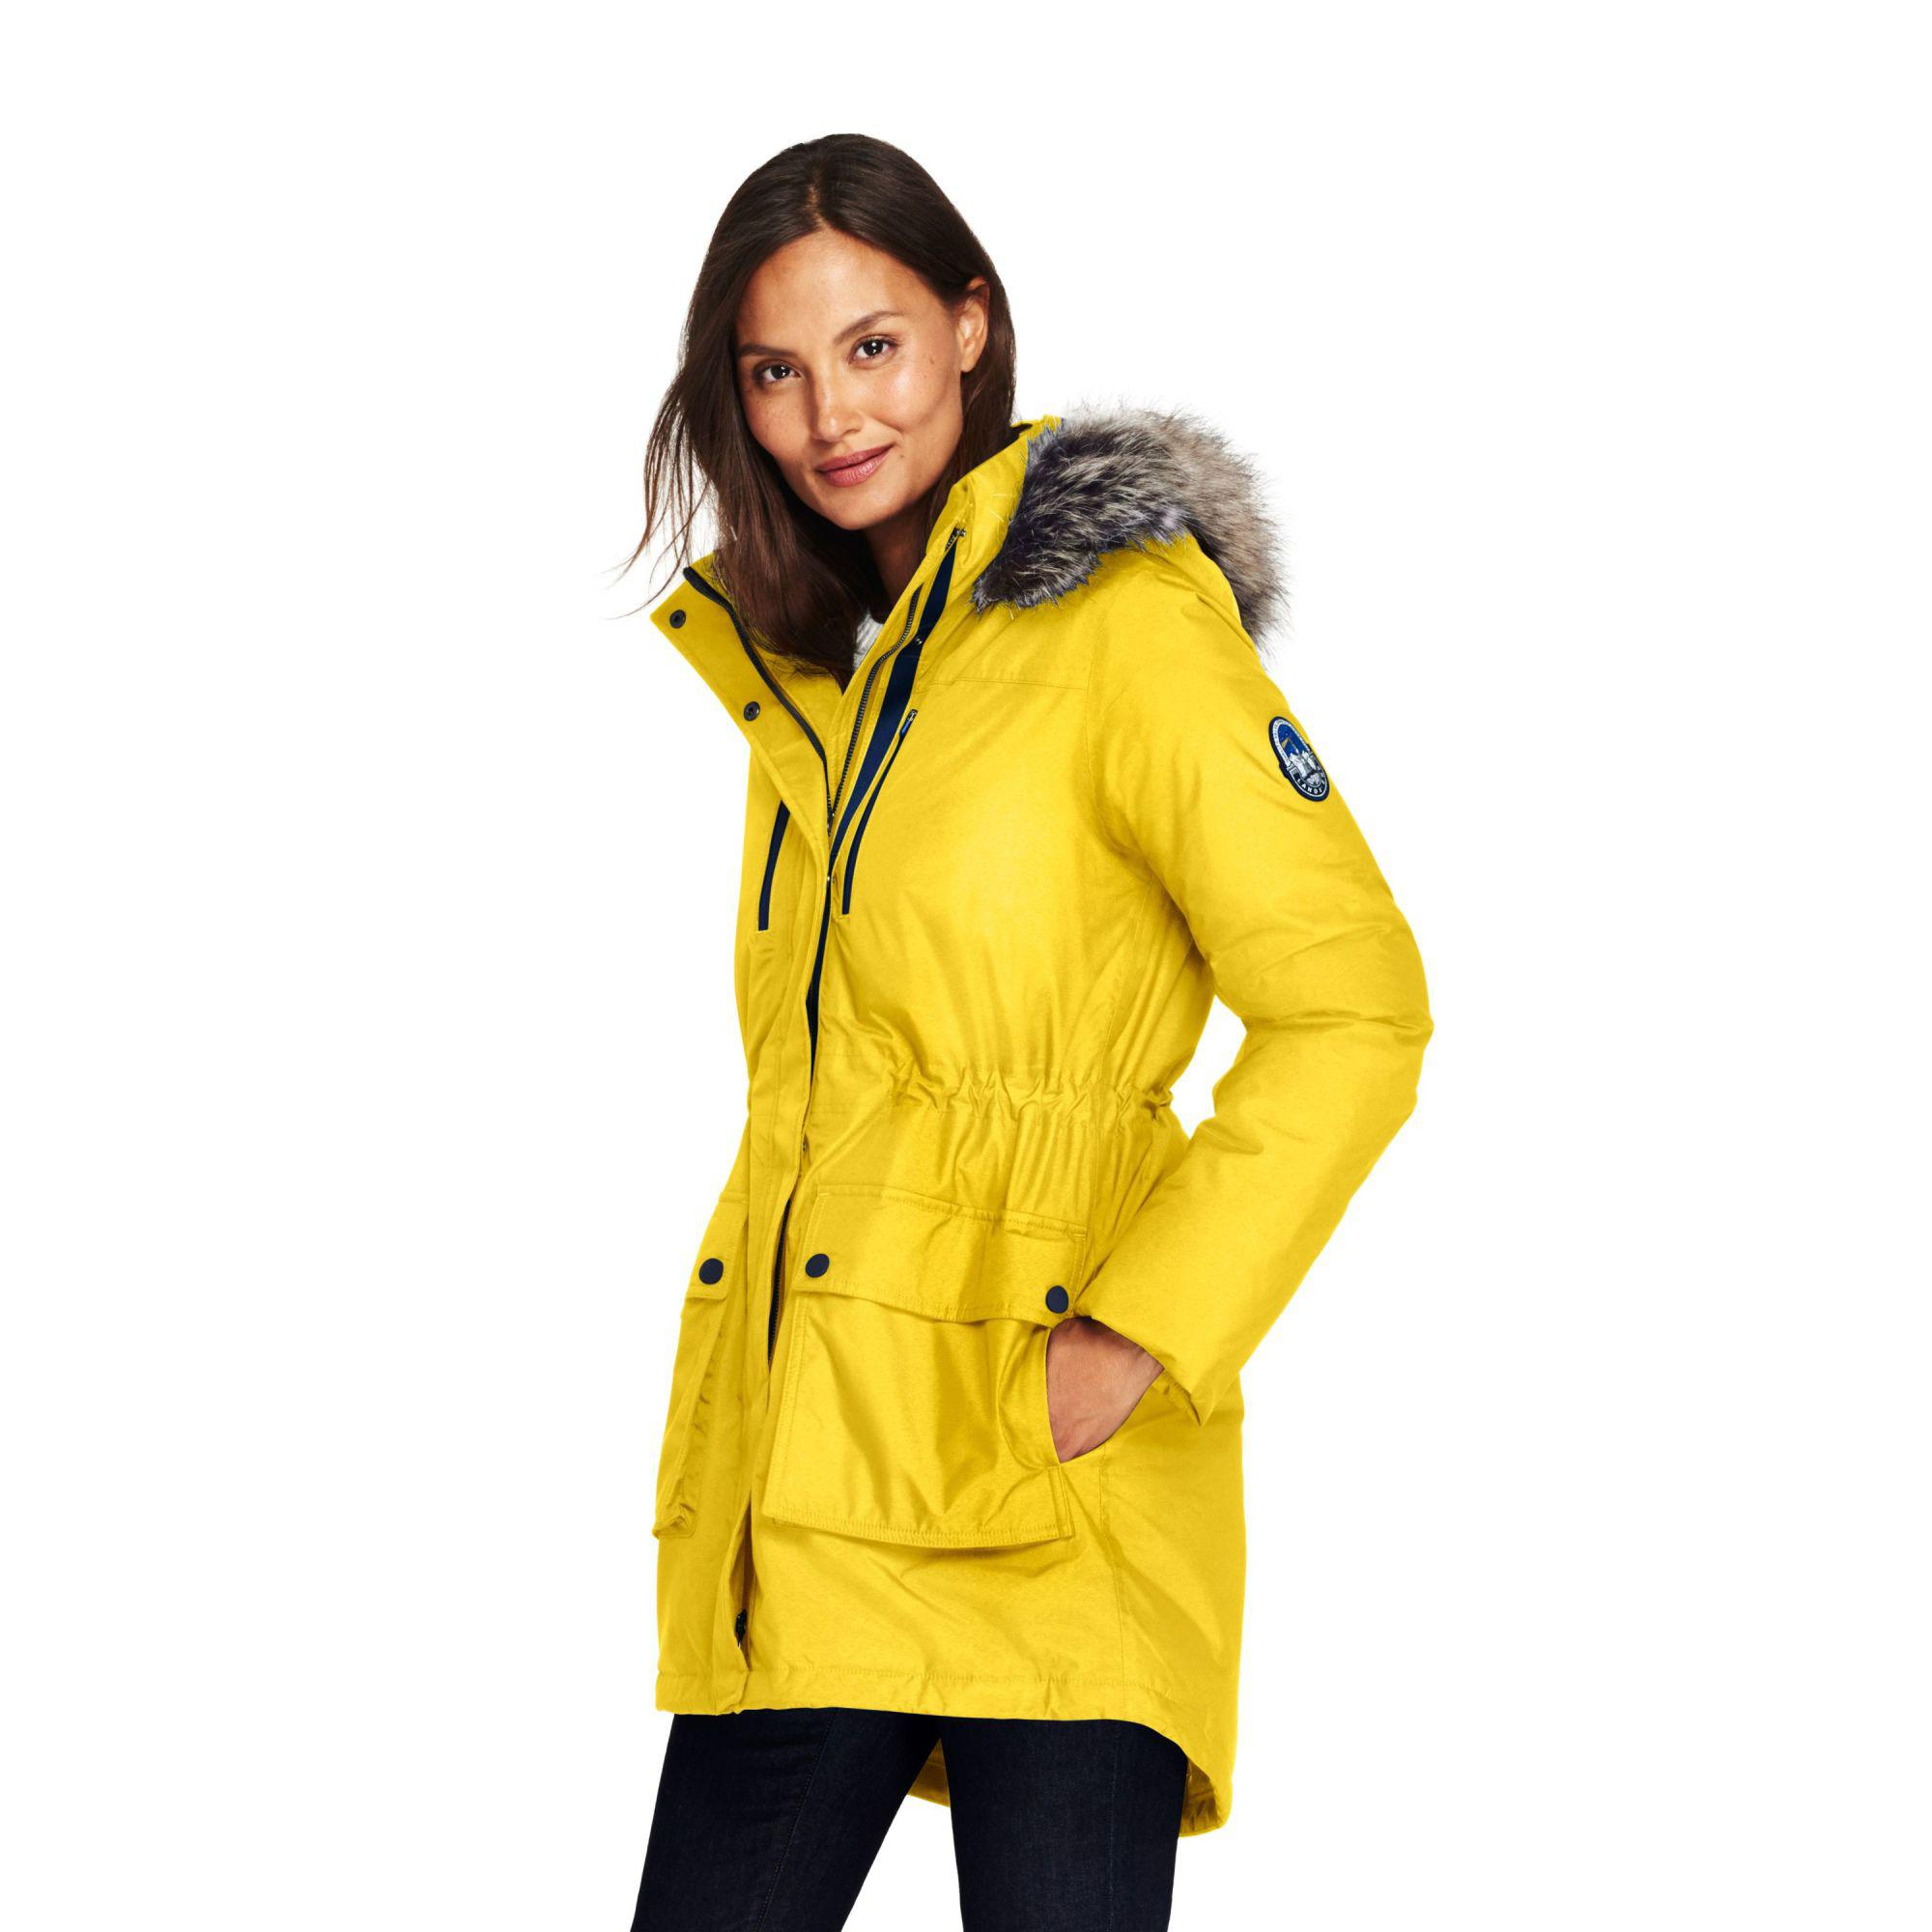 ebbb6f7ea590 Lands' End Yellow Expedition Down Coat in Yellow - Lyst